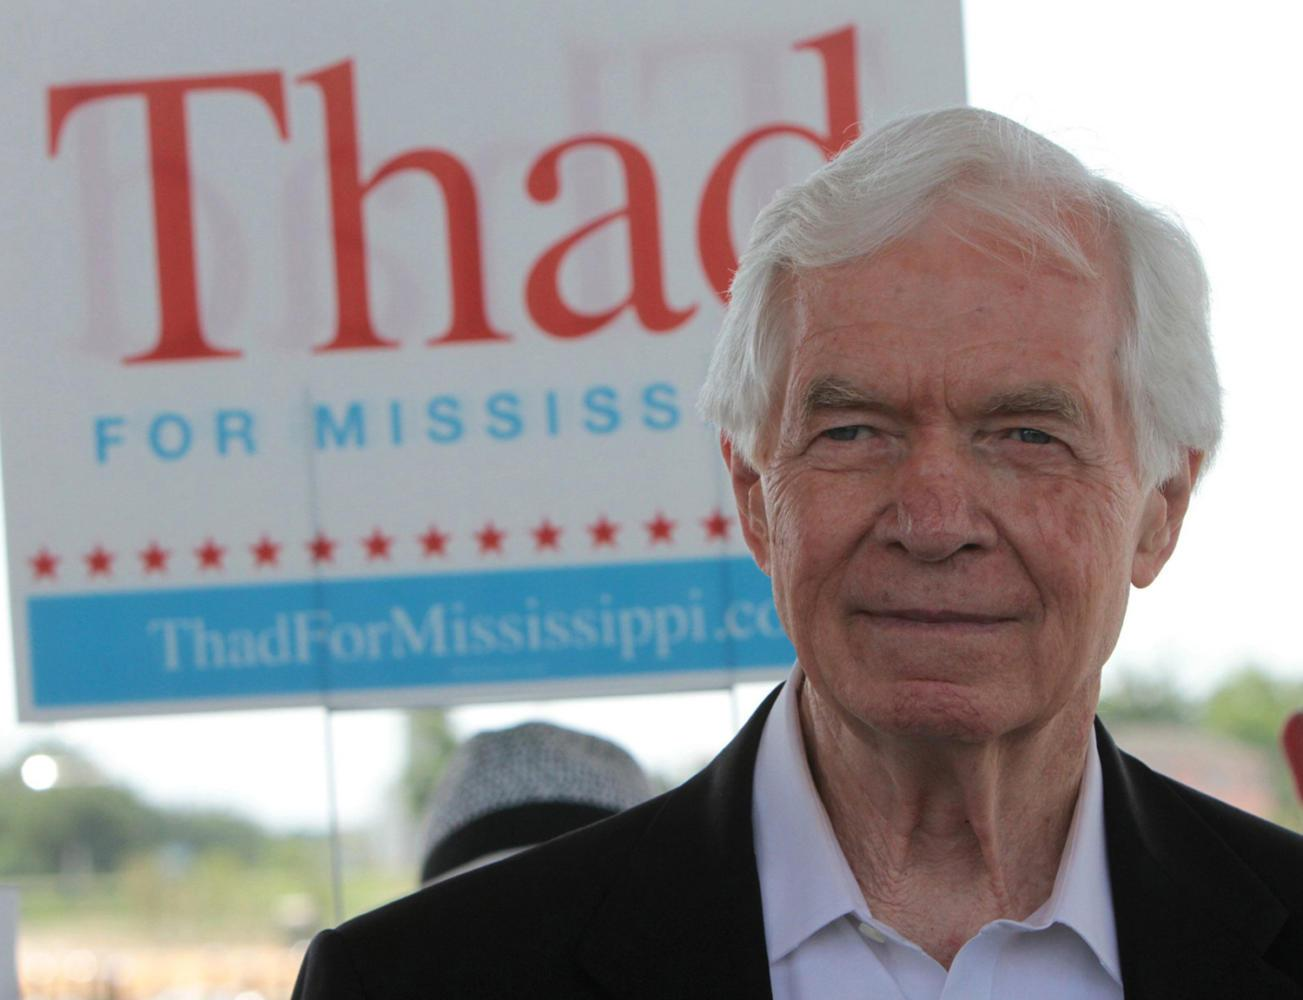 Sen. Thad Cochran, R-Miss., attends a political rally in Pass Christian, Mississippi, in 2014. (John Fitzhugh/Biloxi Sun Herald/MCT)